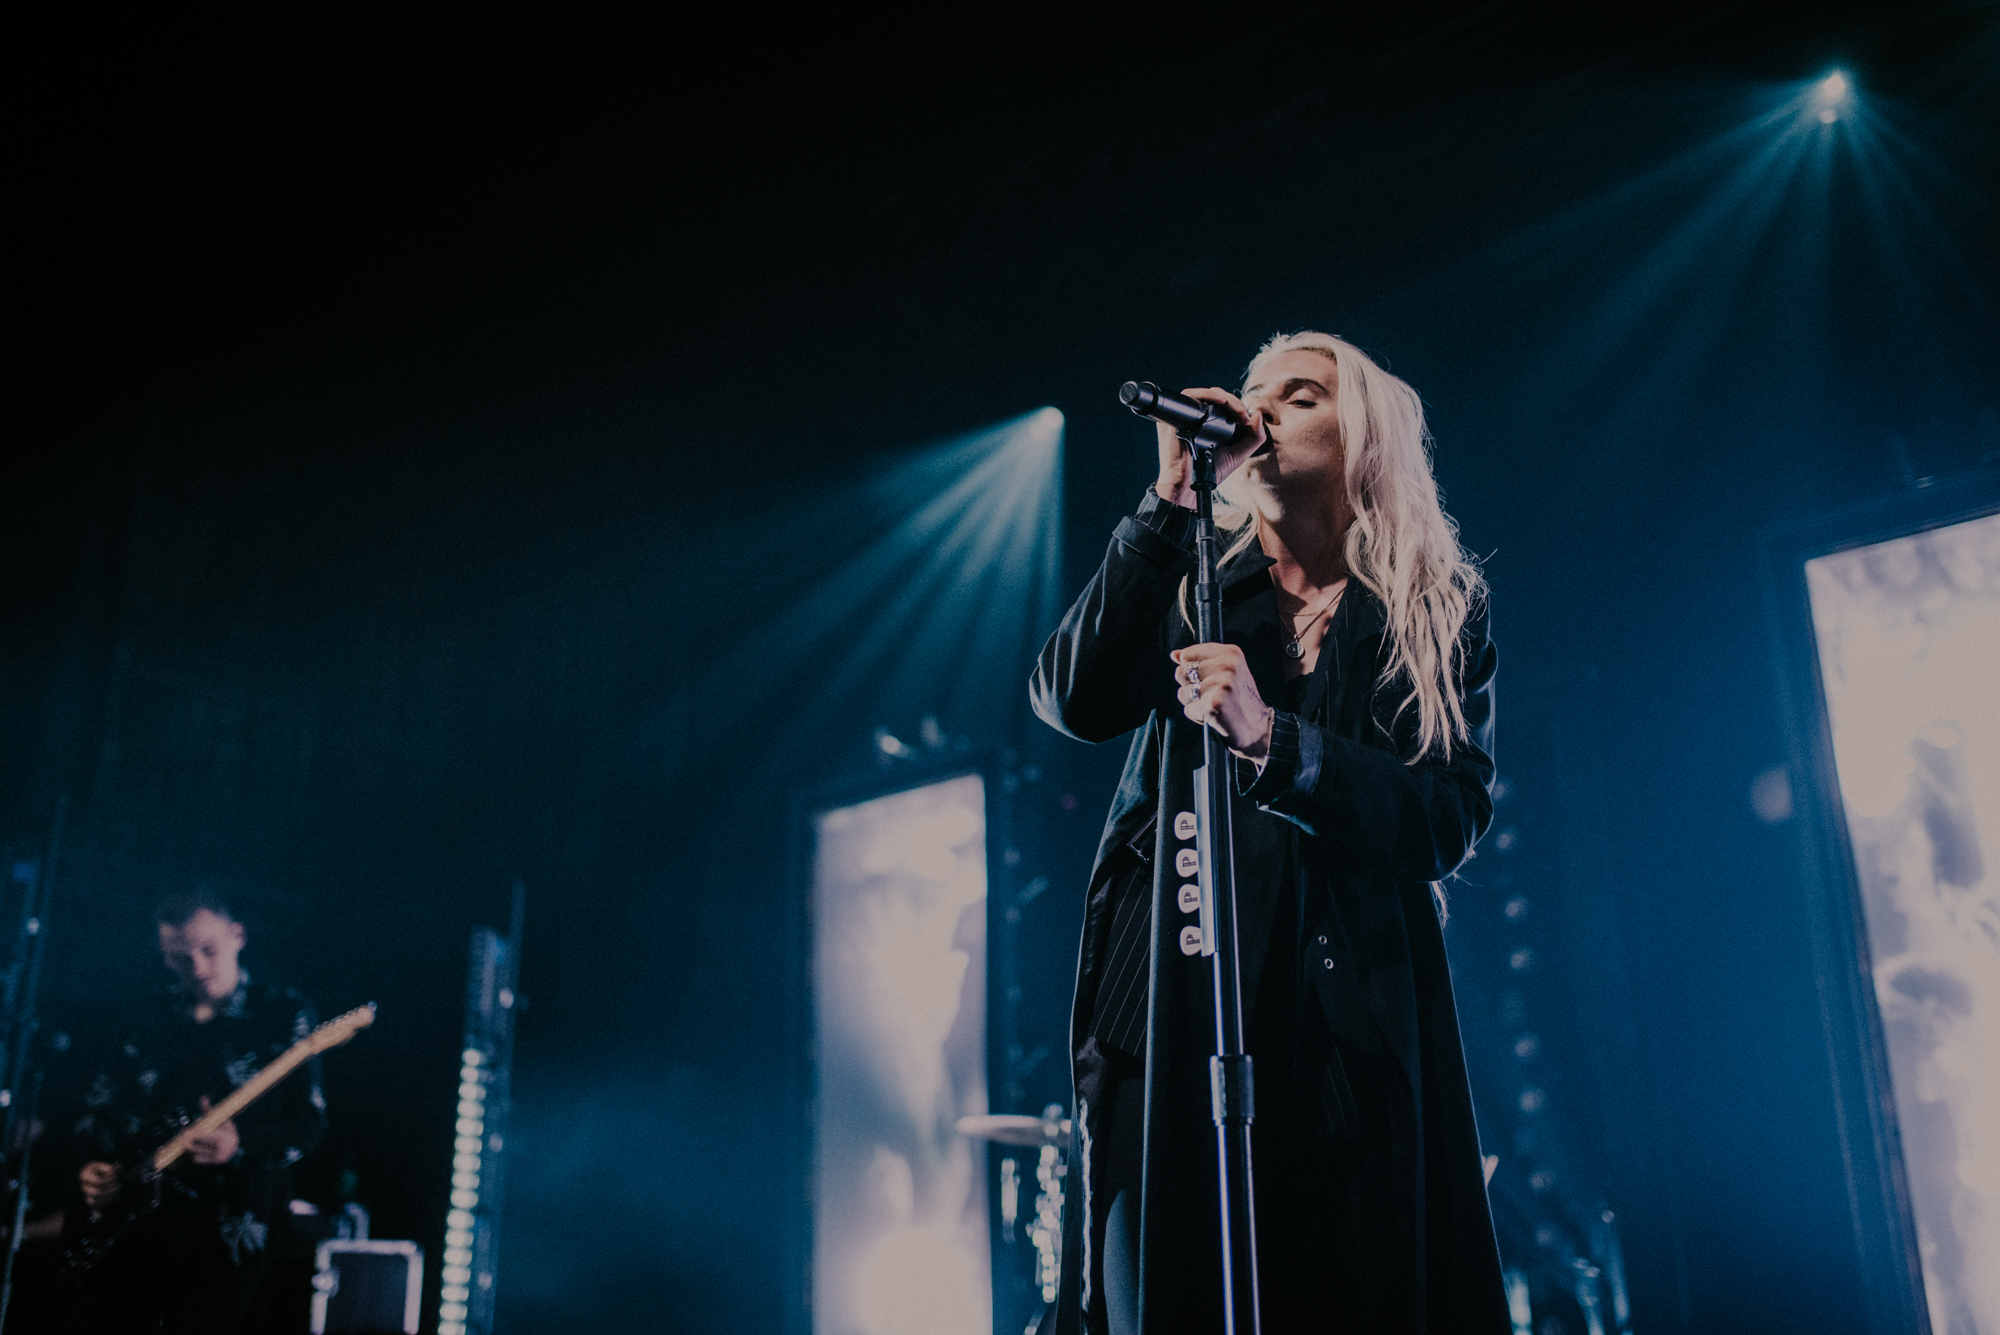 LIVE REVIEW: PVRIS bring the fall's hottest tour to Chicago's Riviera Theater